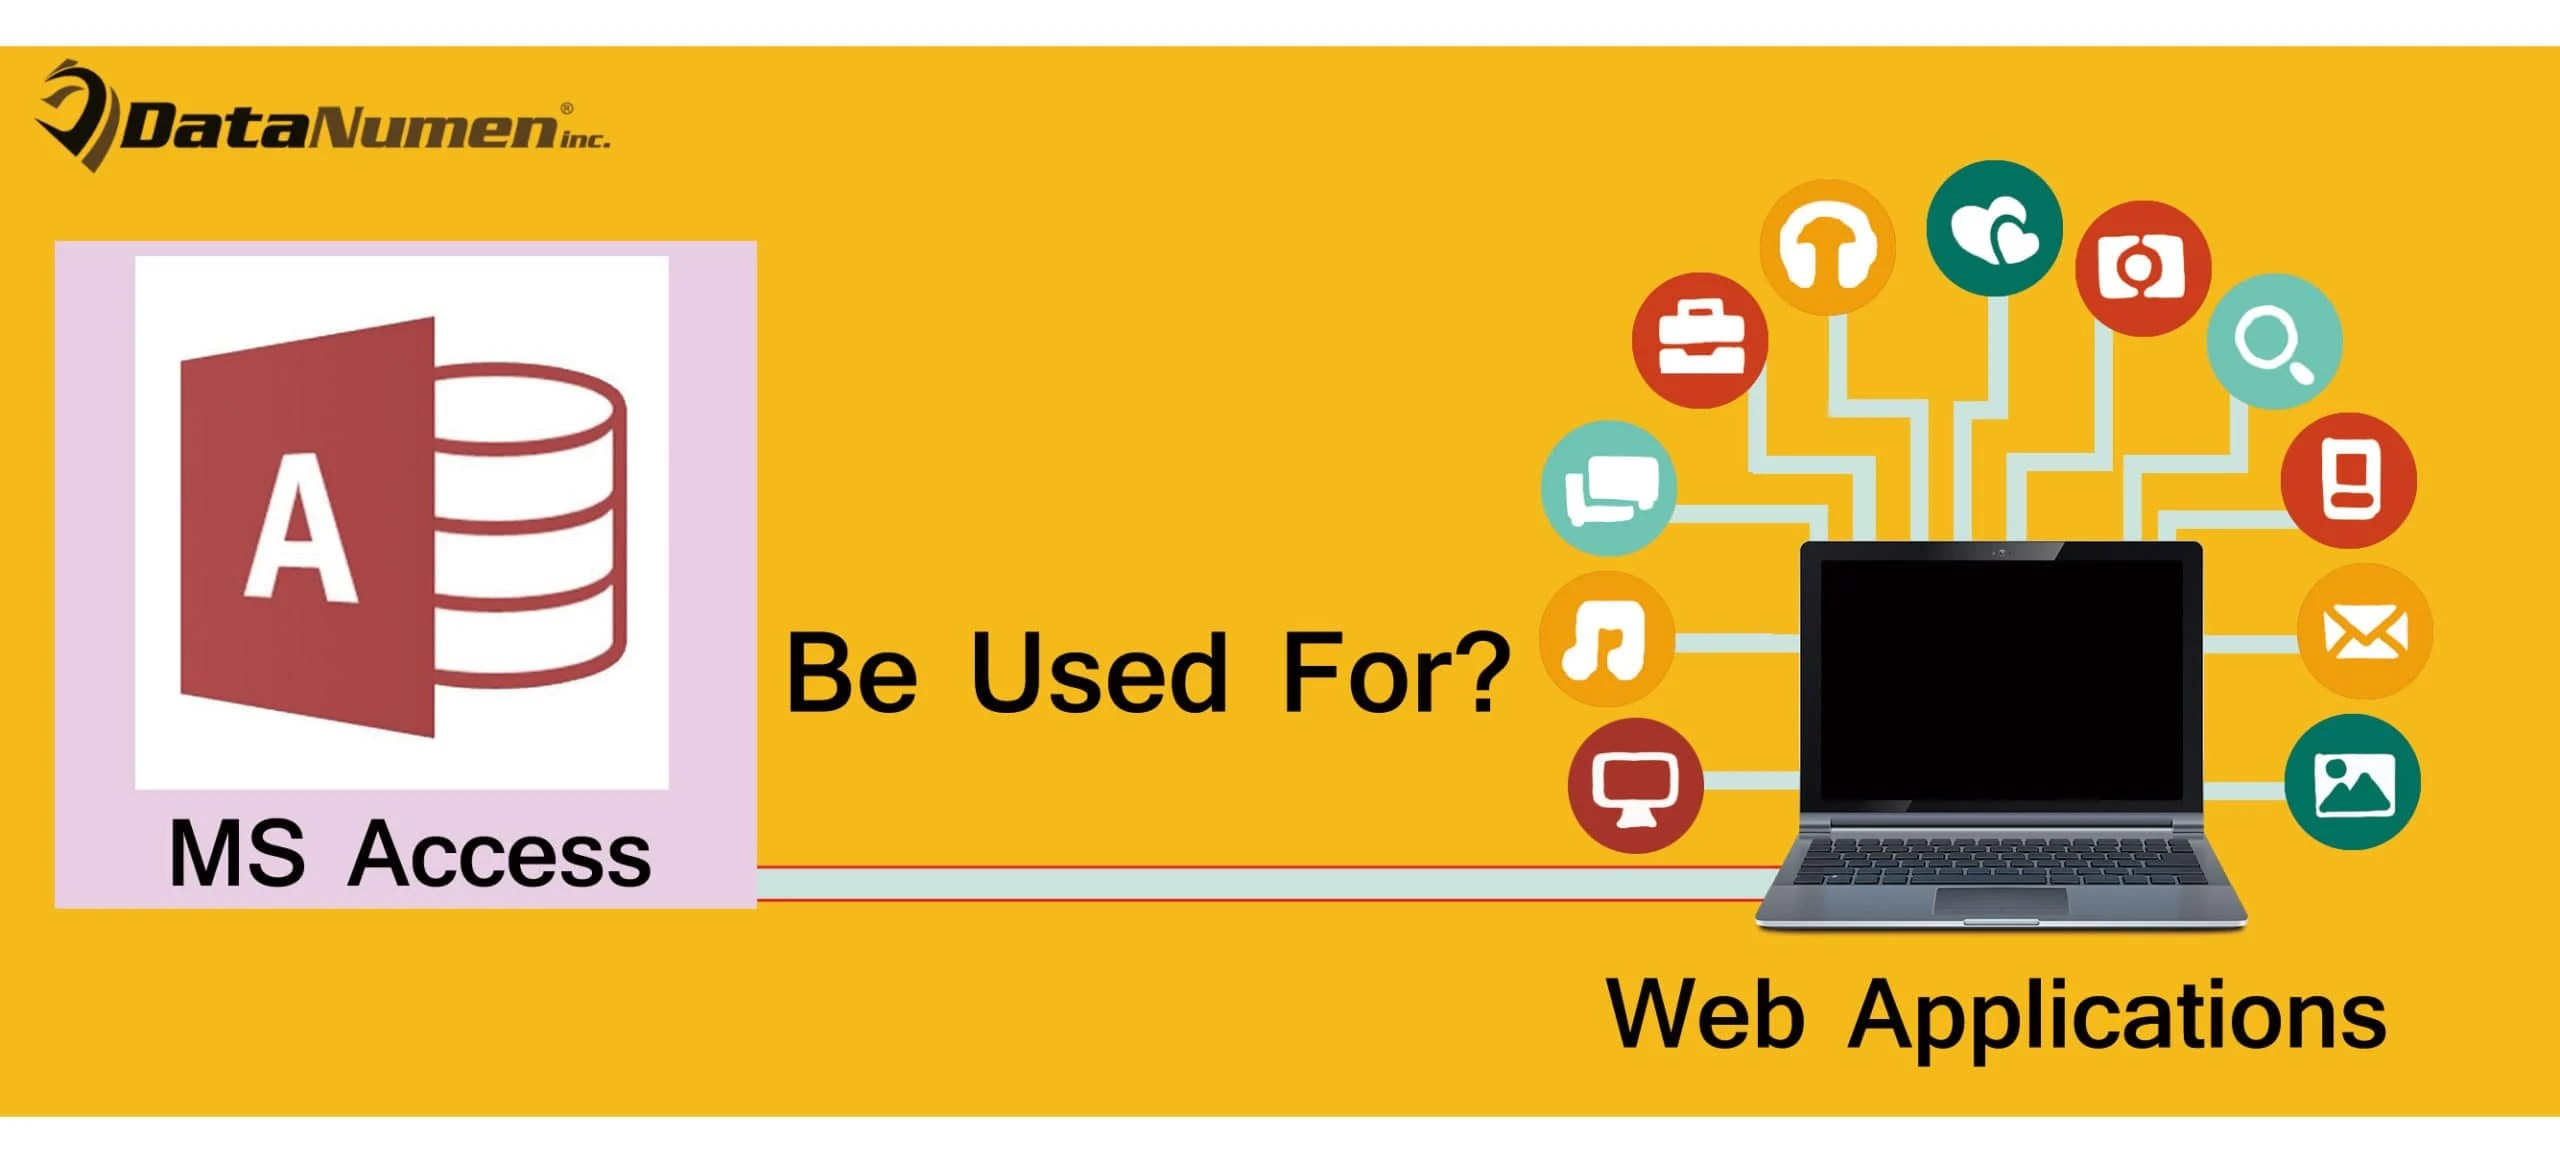 Whether MS Access Can Be Used For Web Applications